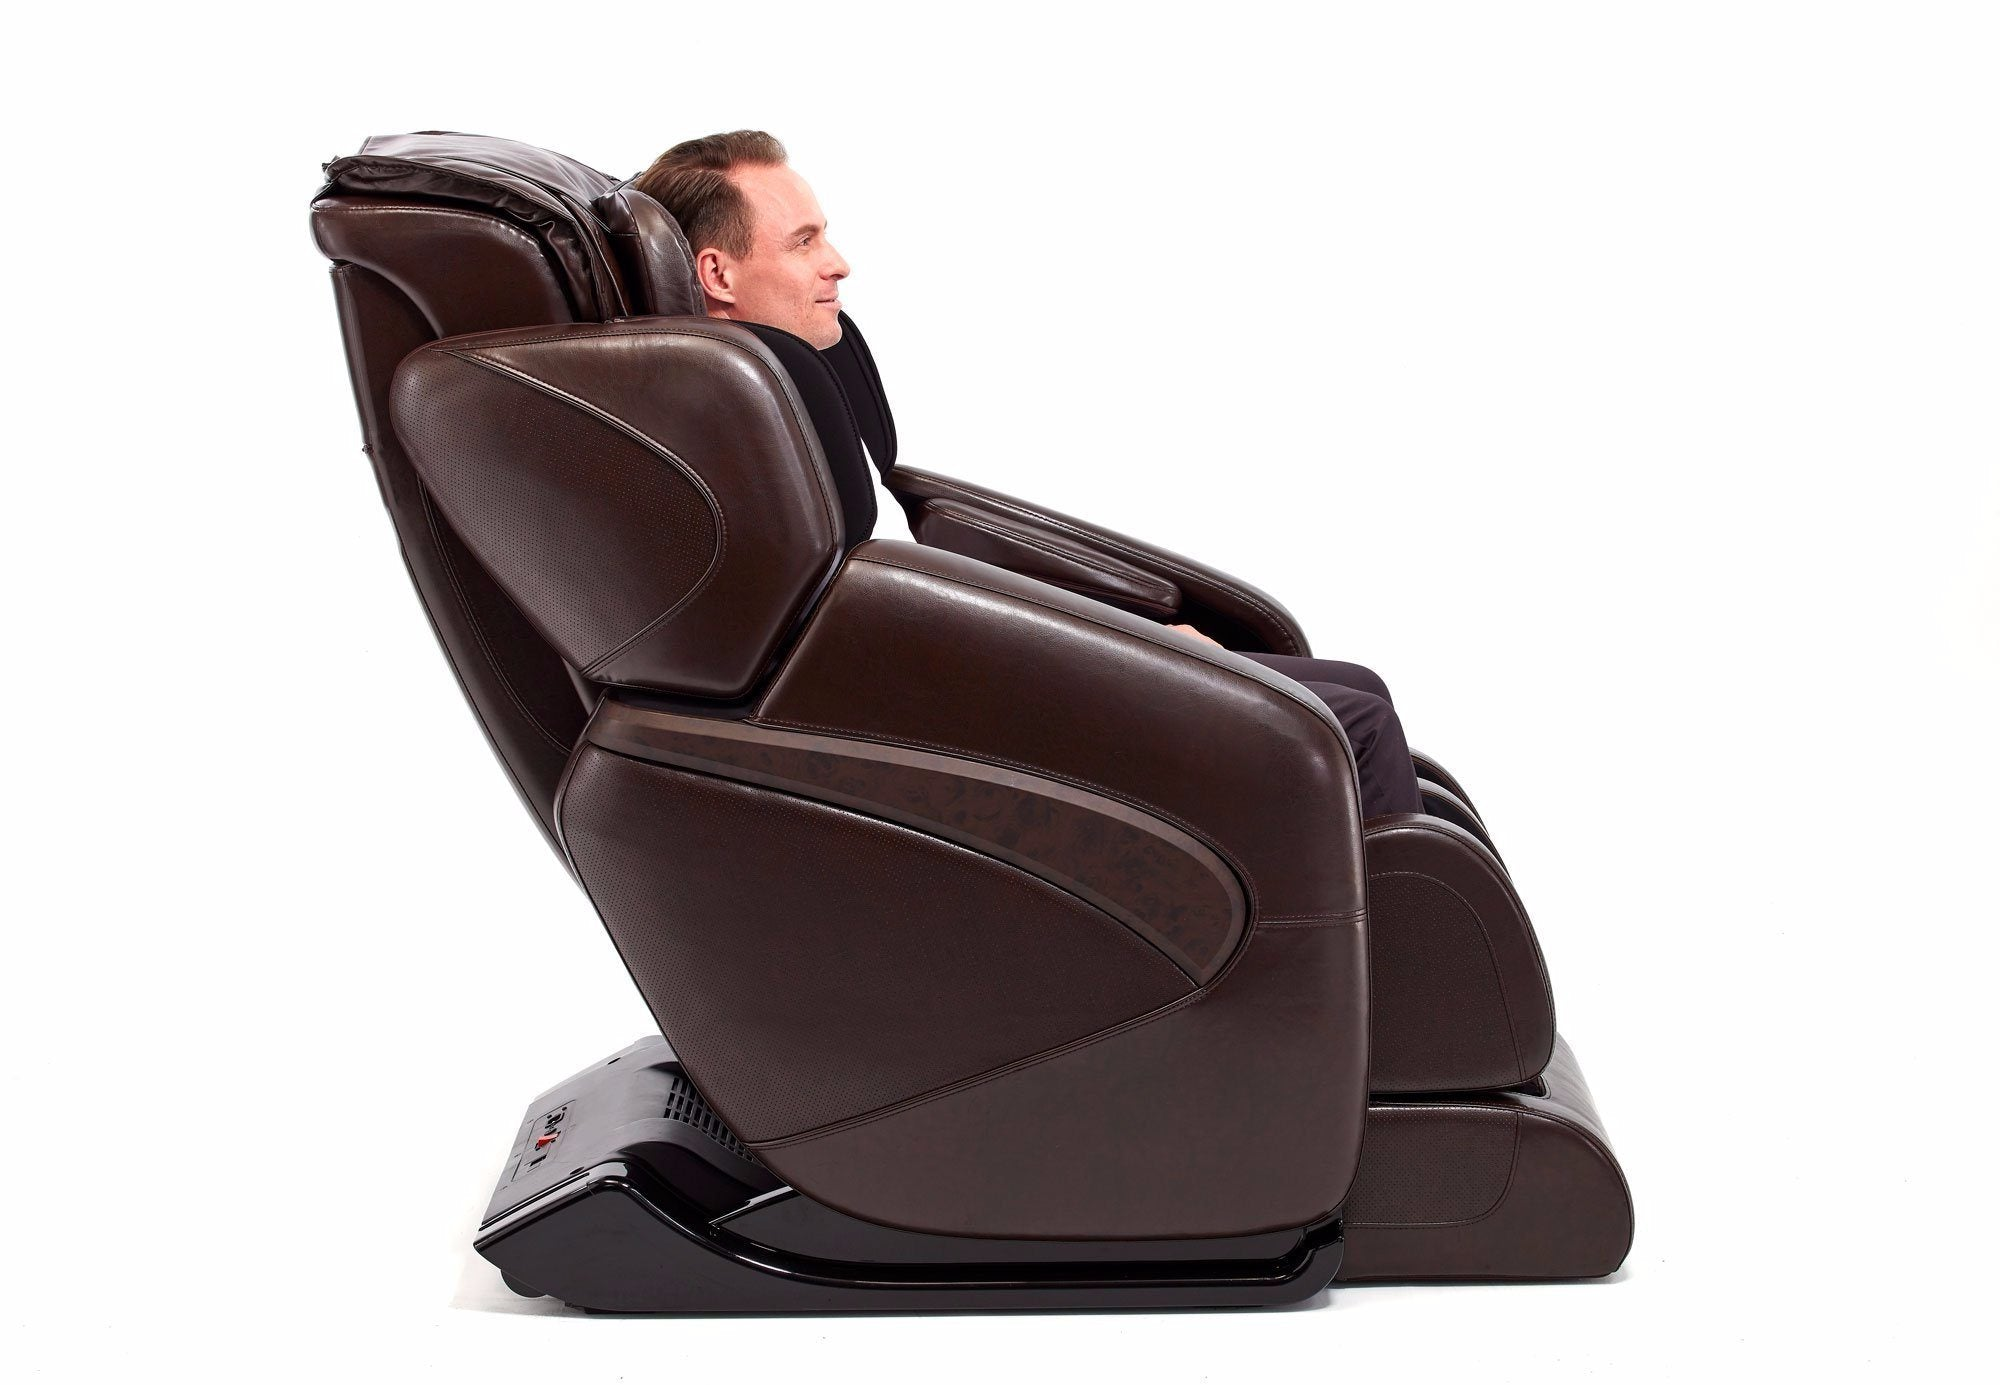 p chairs chair room living reclining large and impulse massage s recliners bob discount gallery furniture